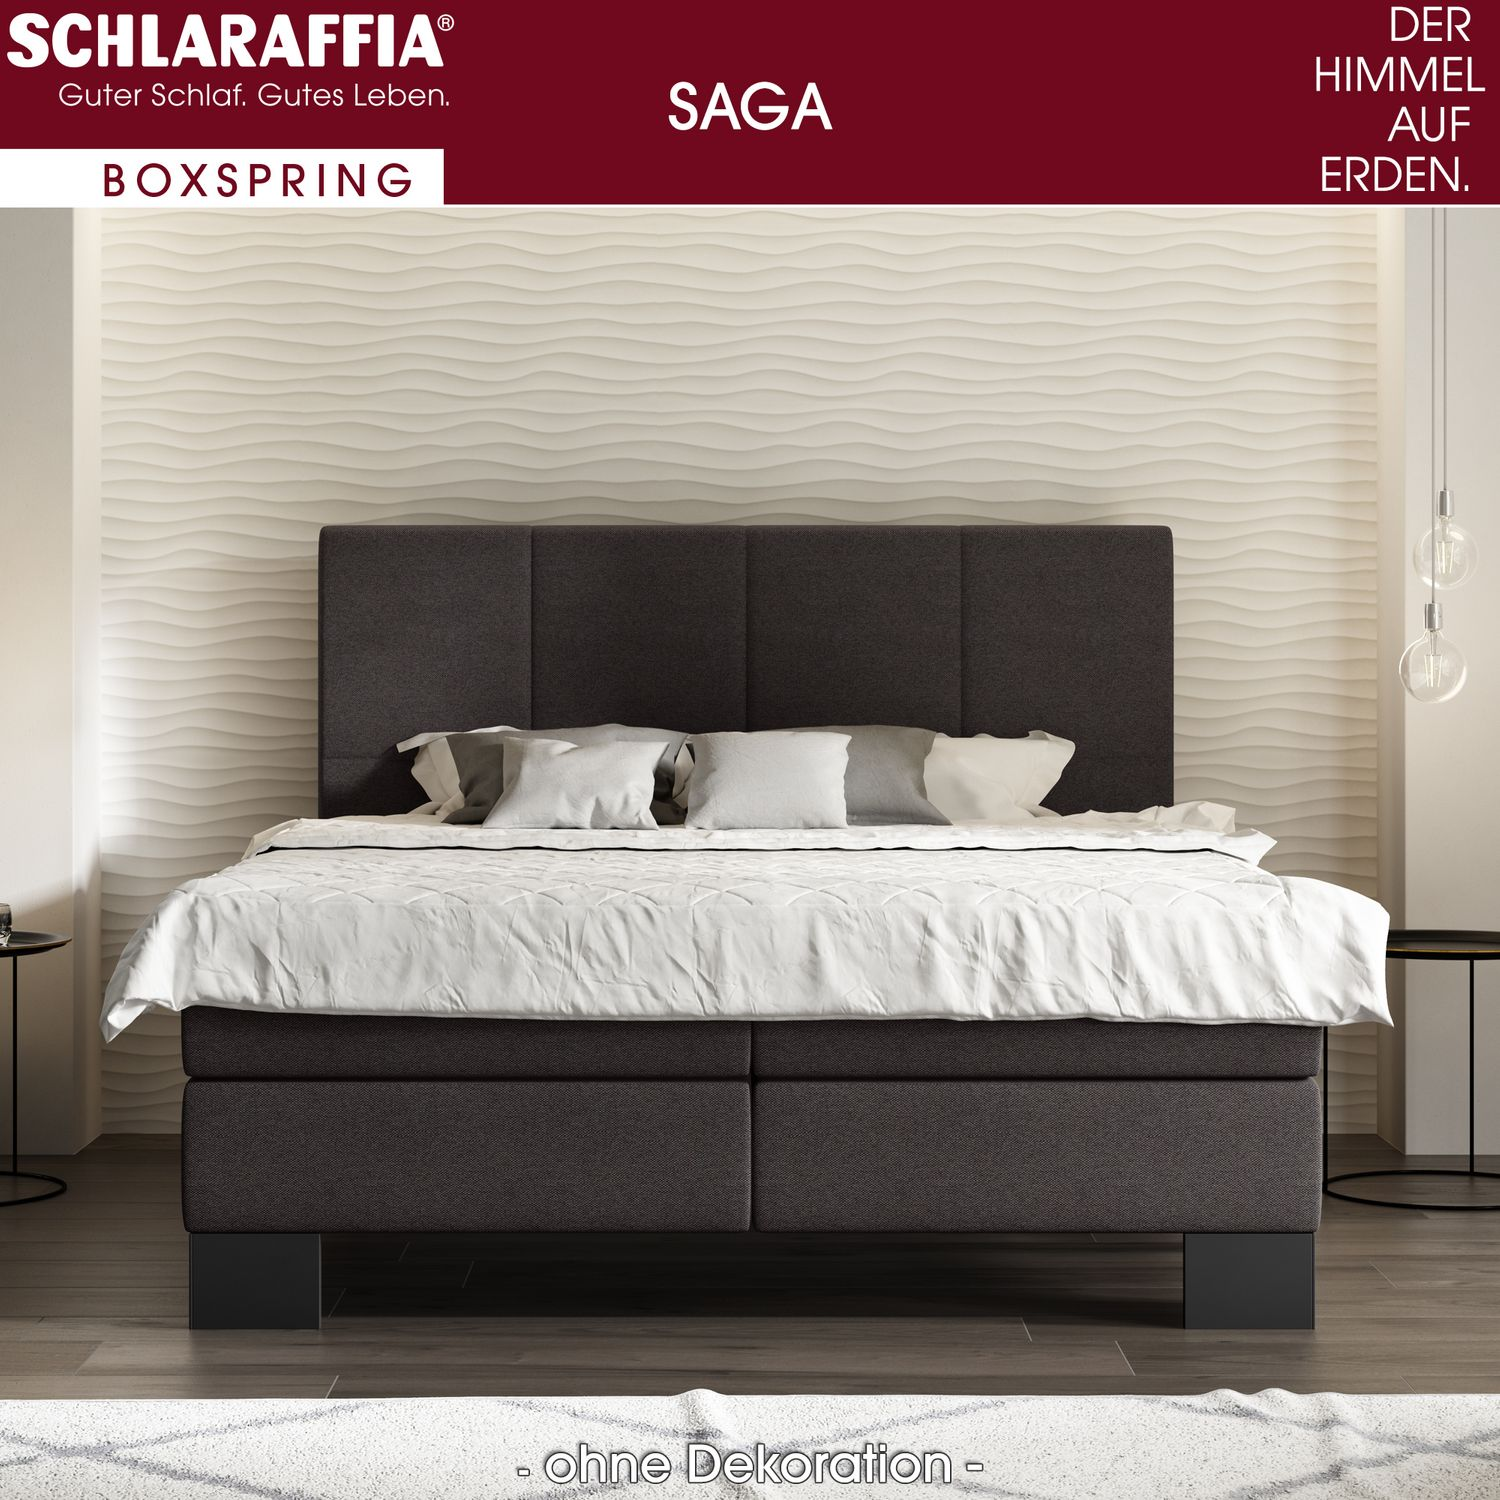 schlaraffia saga box cubic boxspringbett 140x200 cm boxspringbetten 140 x 200 cm. Black Bedroom Furniture Sets. Home Design Ideas